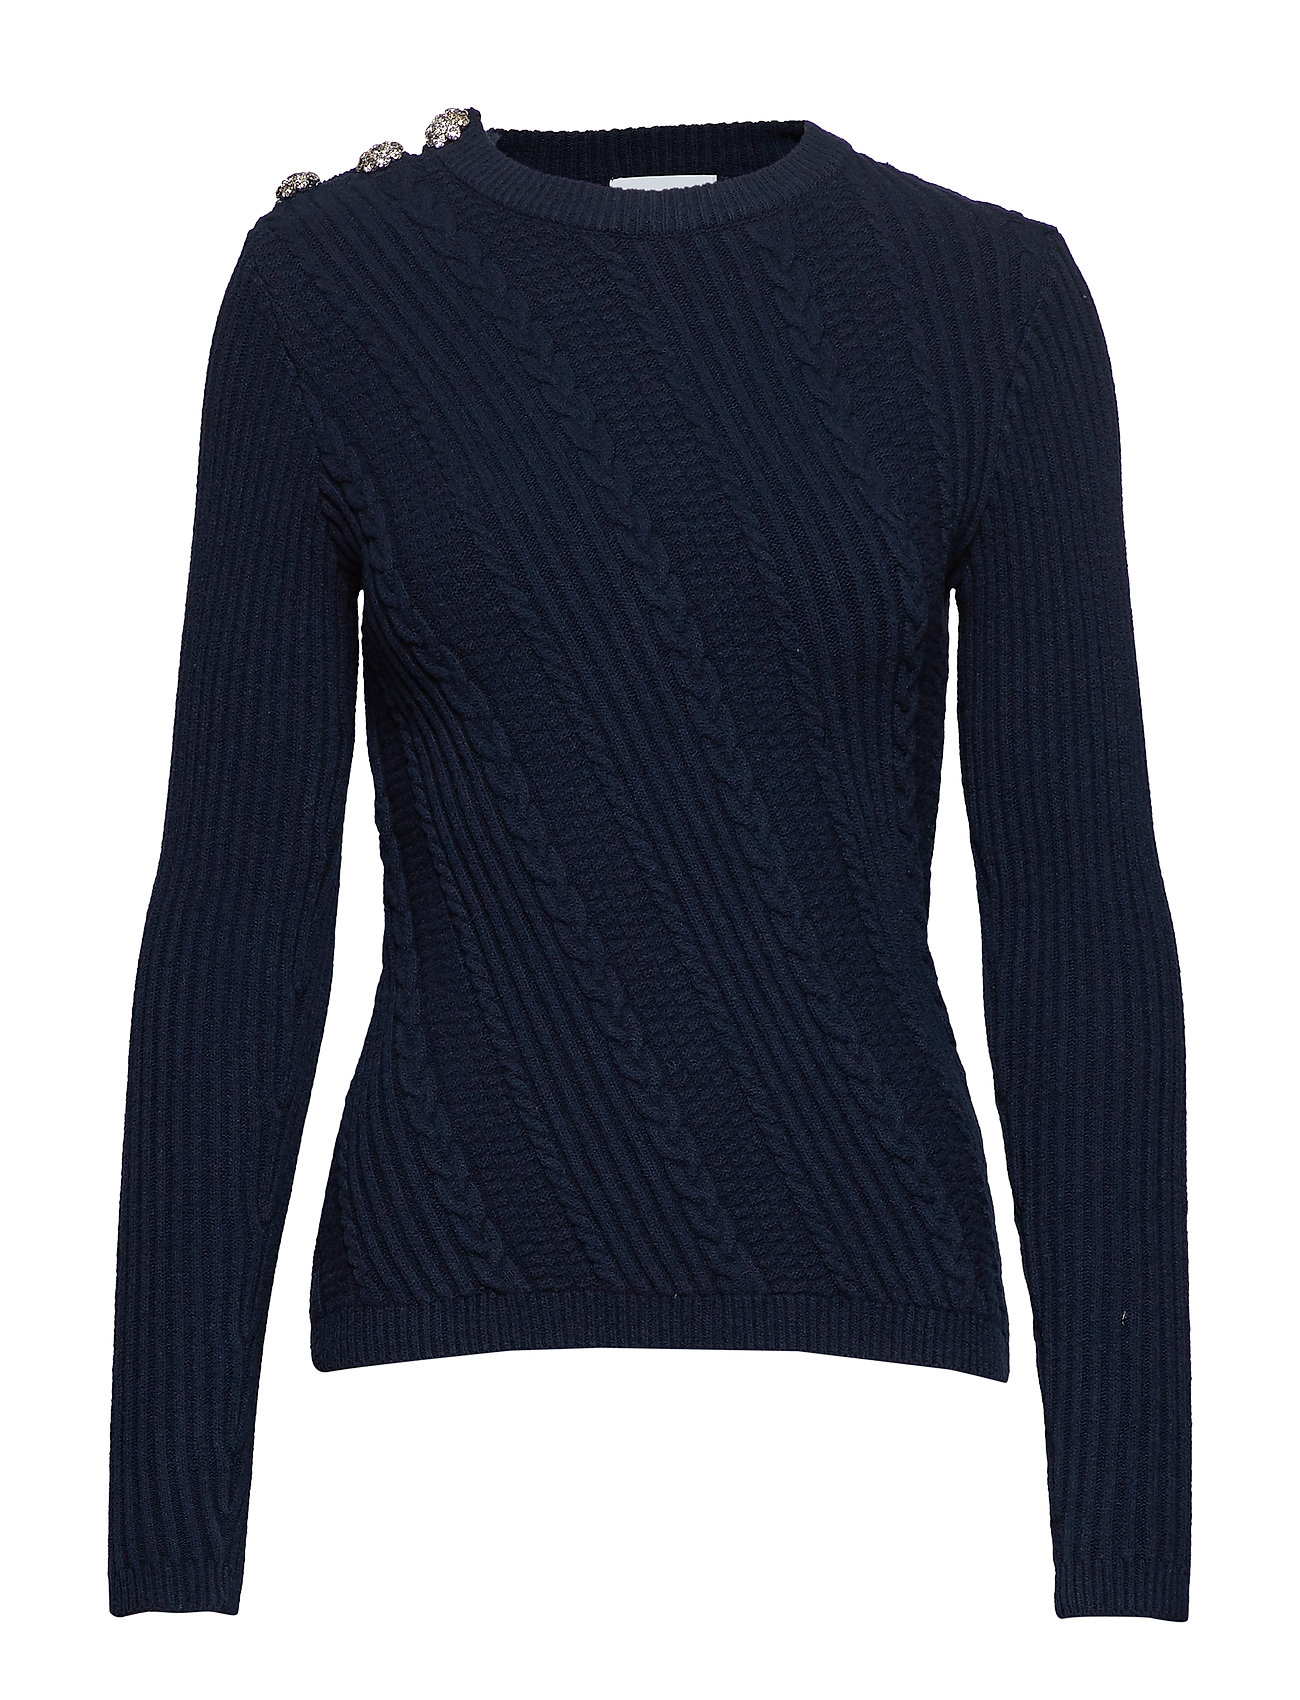 Ganni Cotton Knit Pullover - TOTAL ECLIPSE